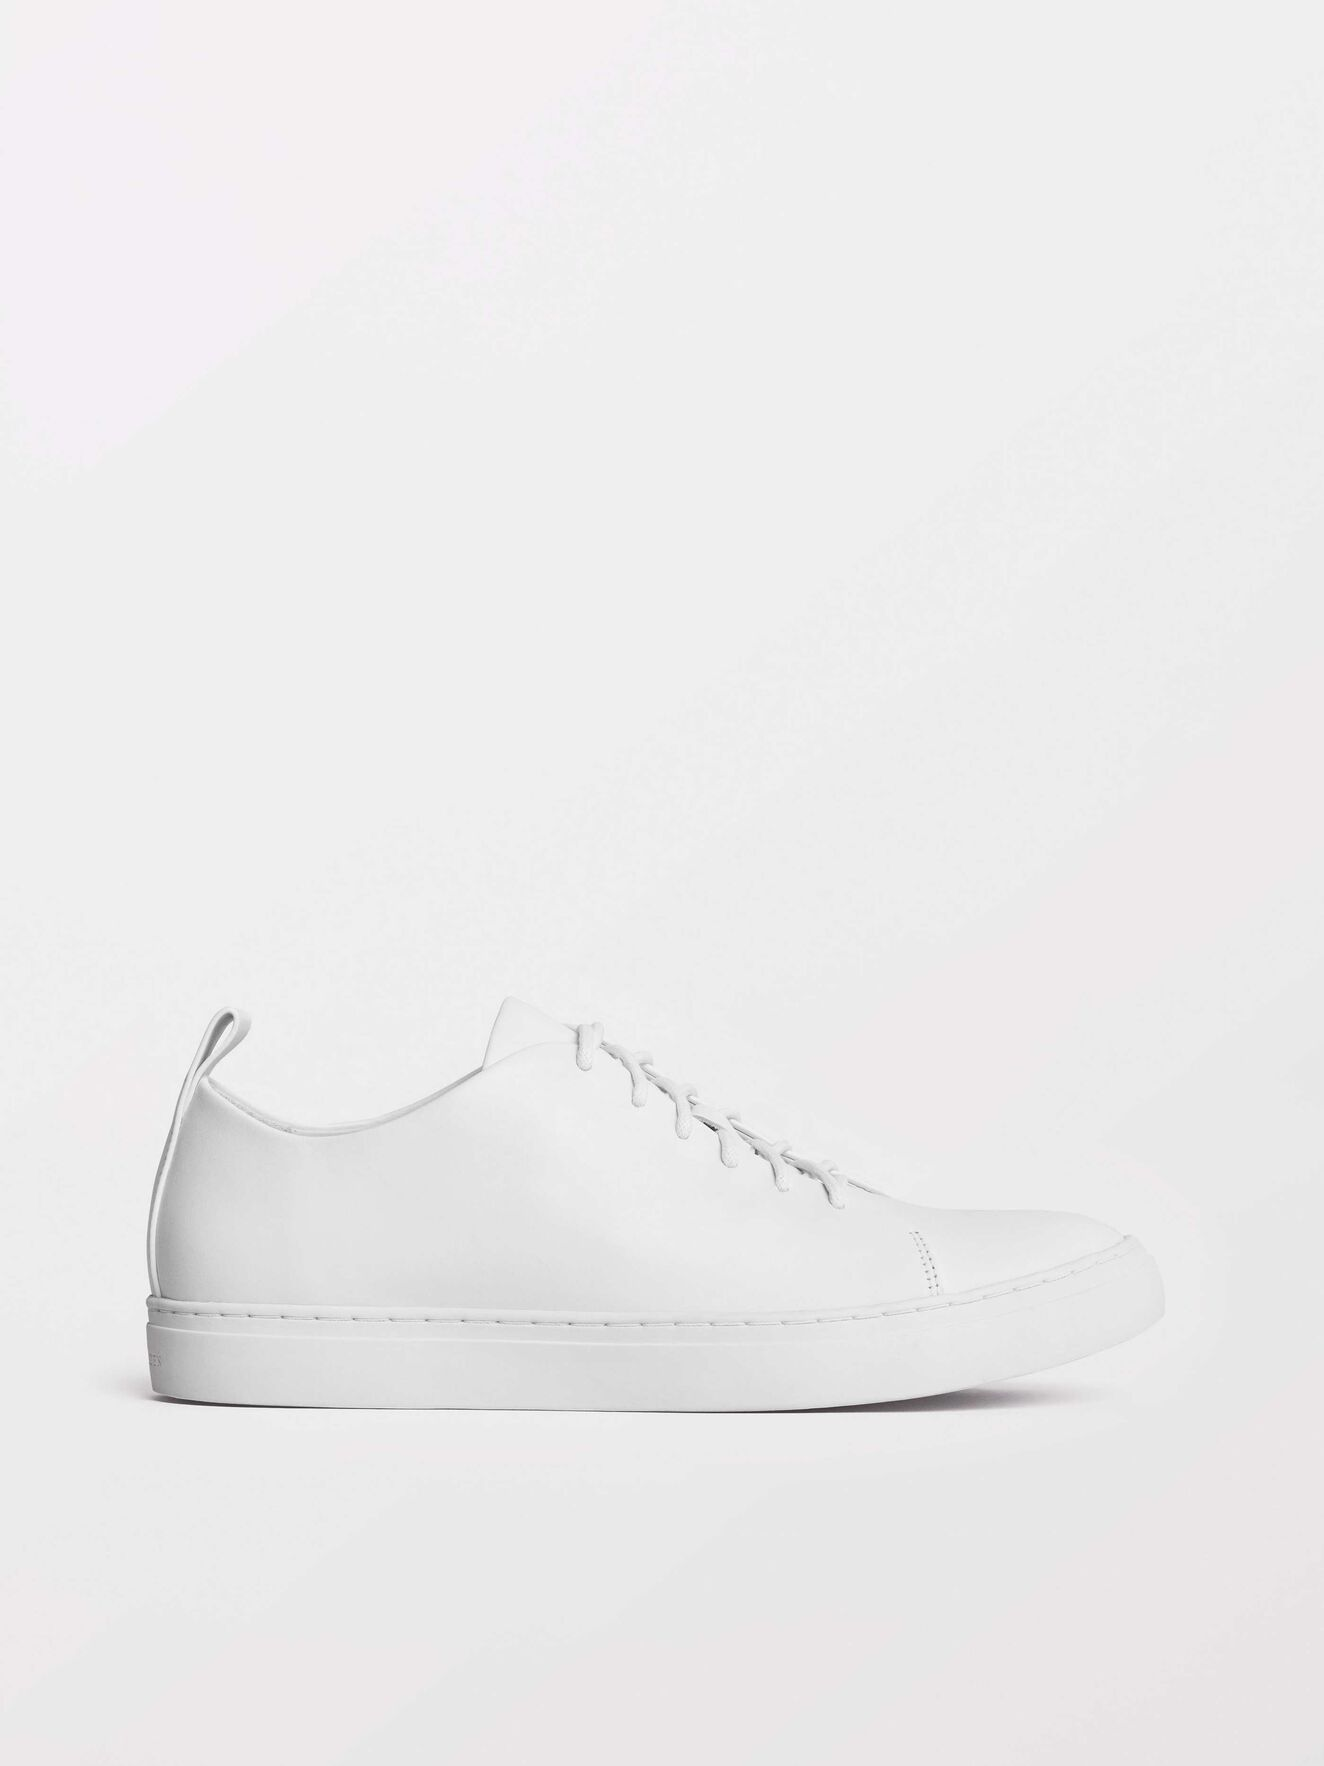 Brukare Sneakers in White from Tiger of Sweden